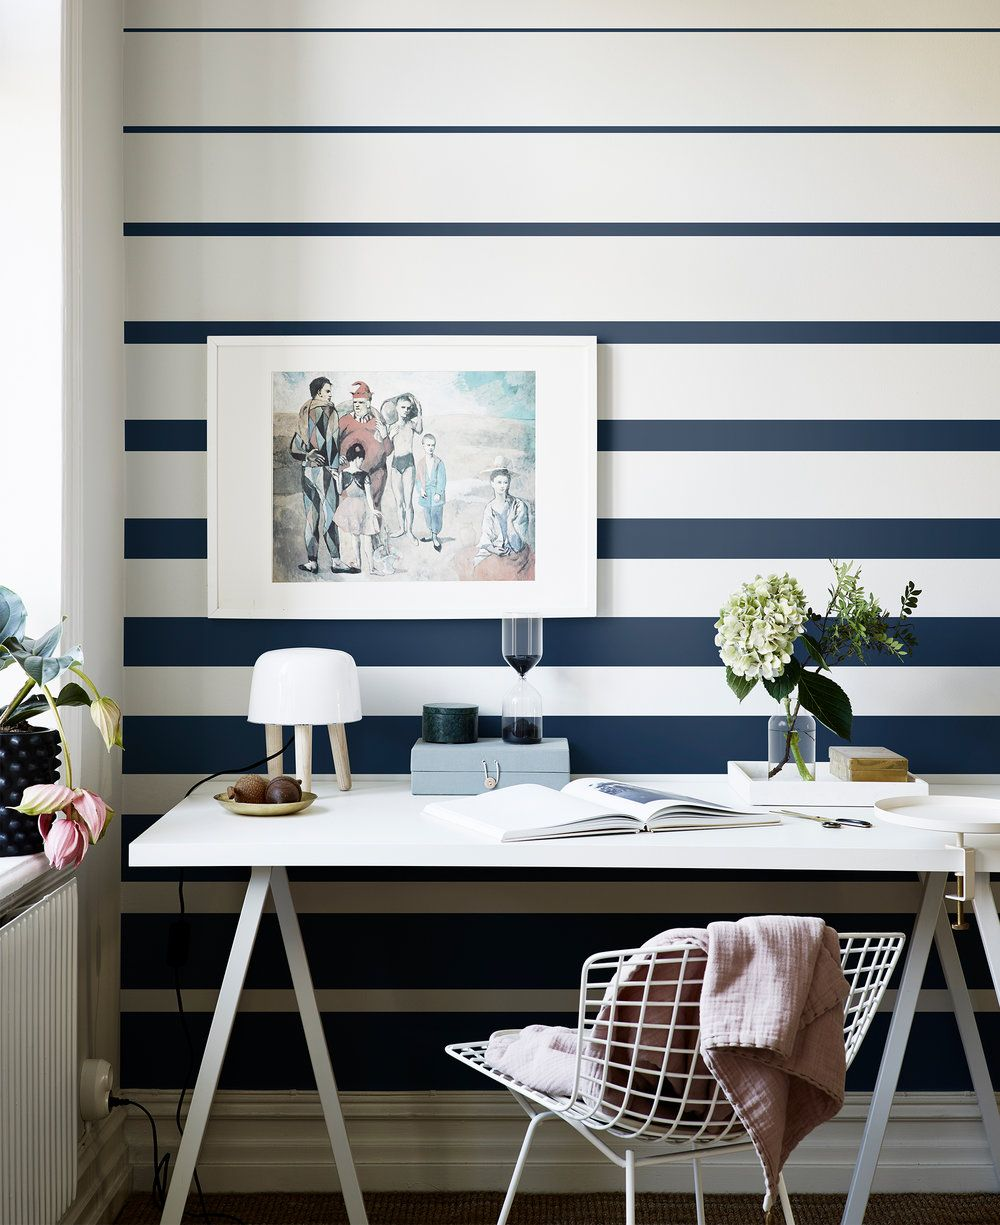 Thick Diagonal Striped Pattern Accent Wall: Striped Walls, Striped Accent